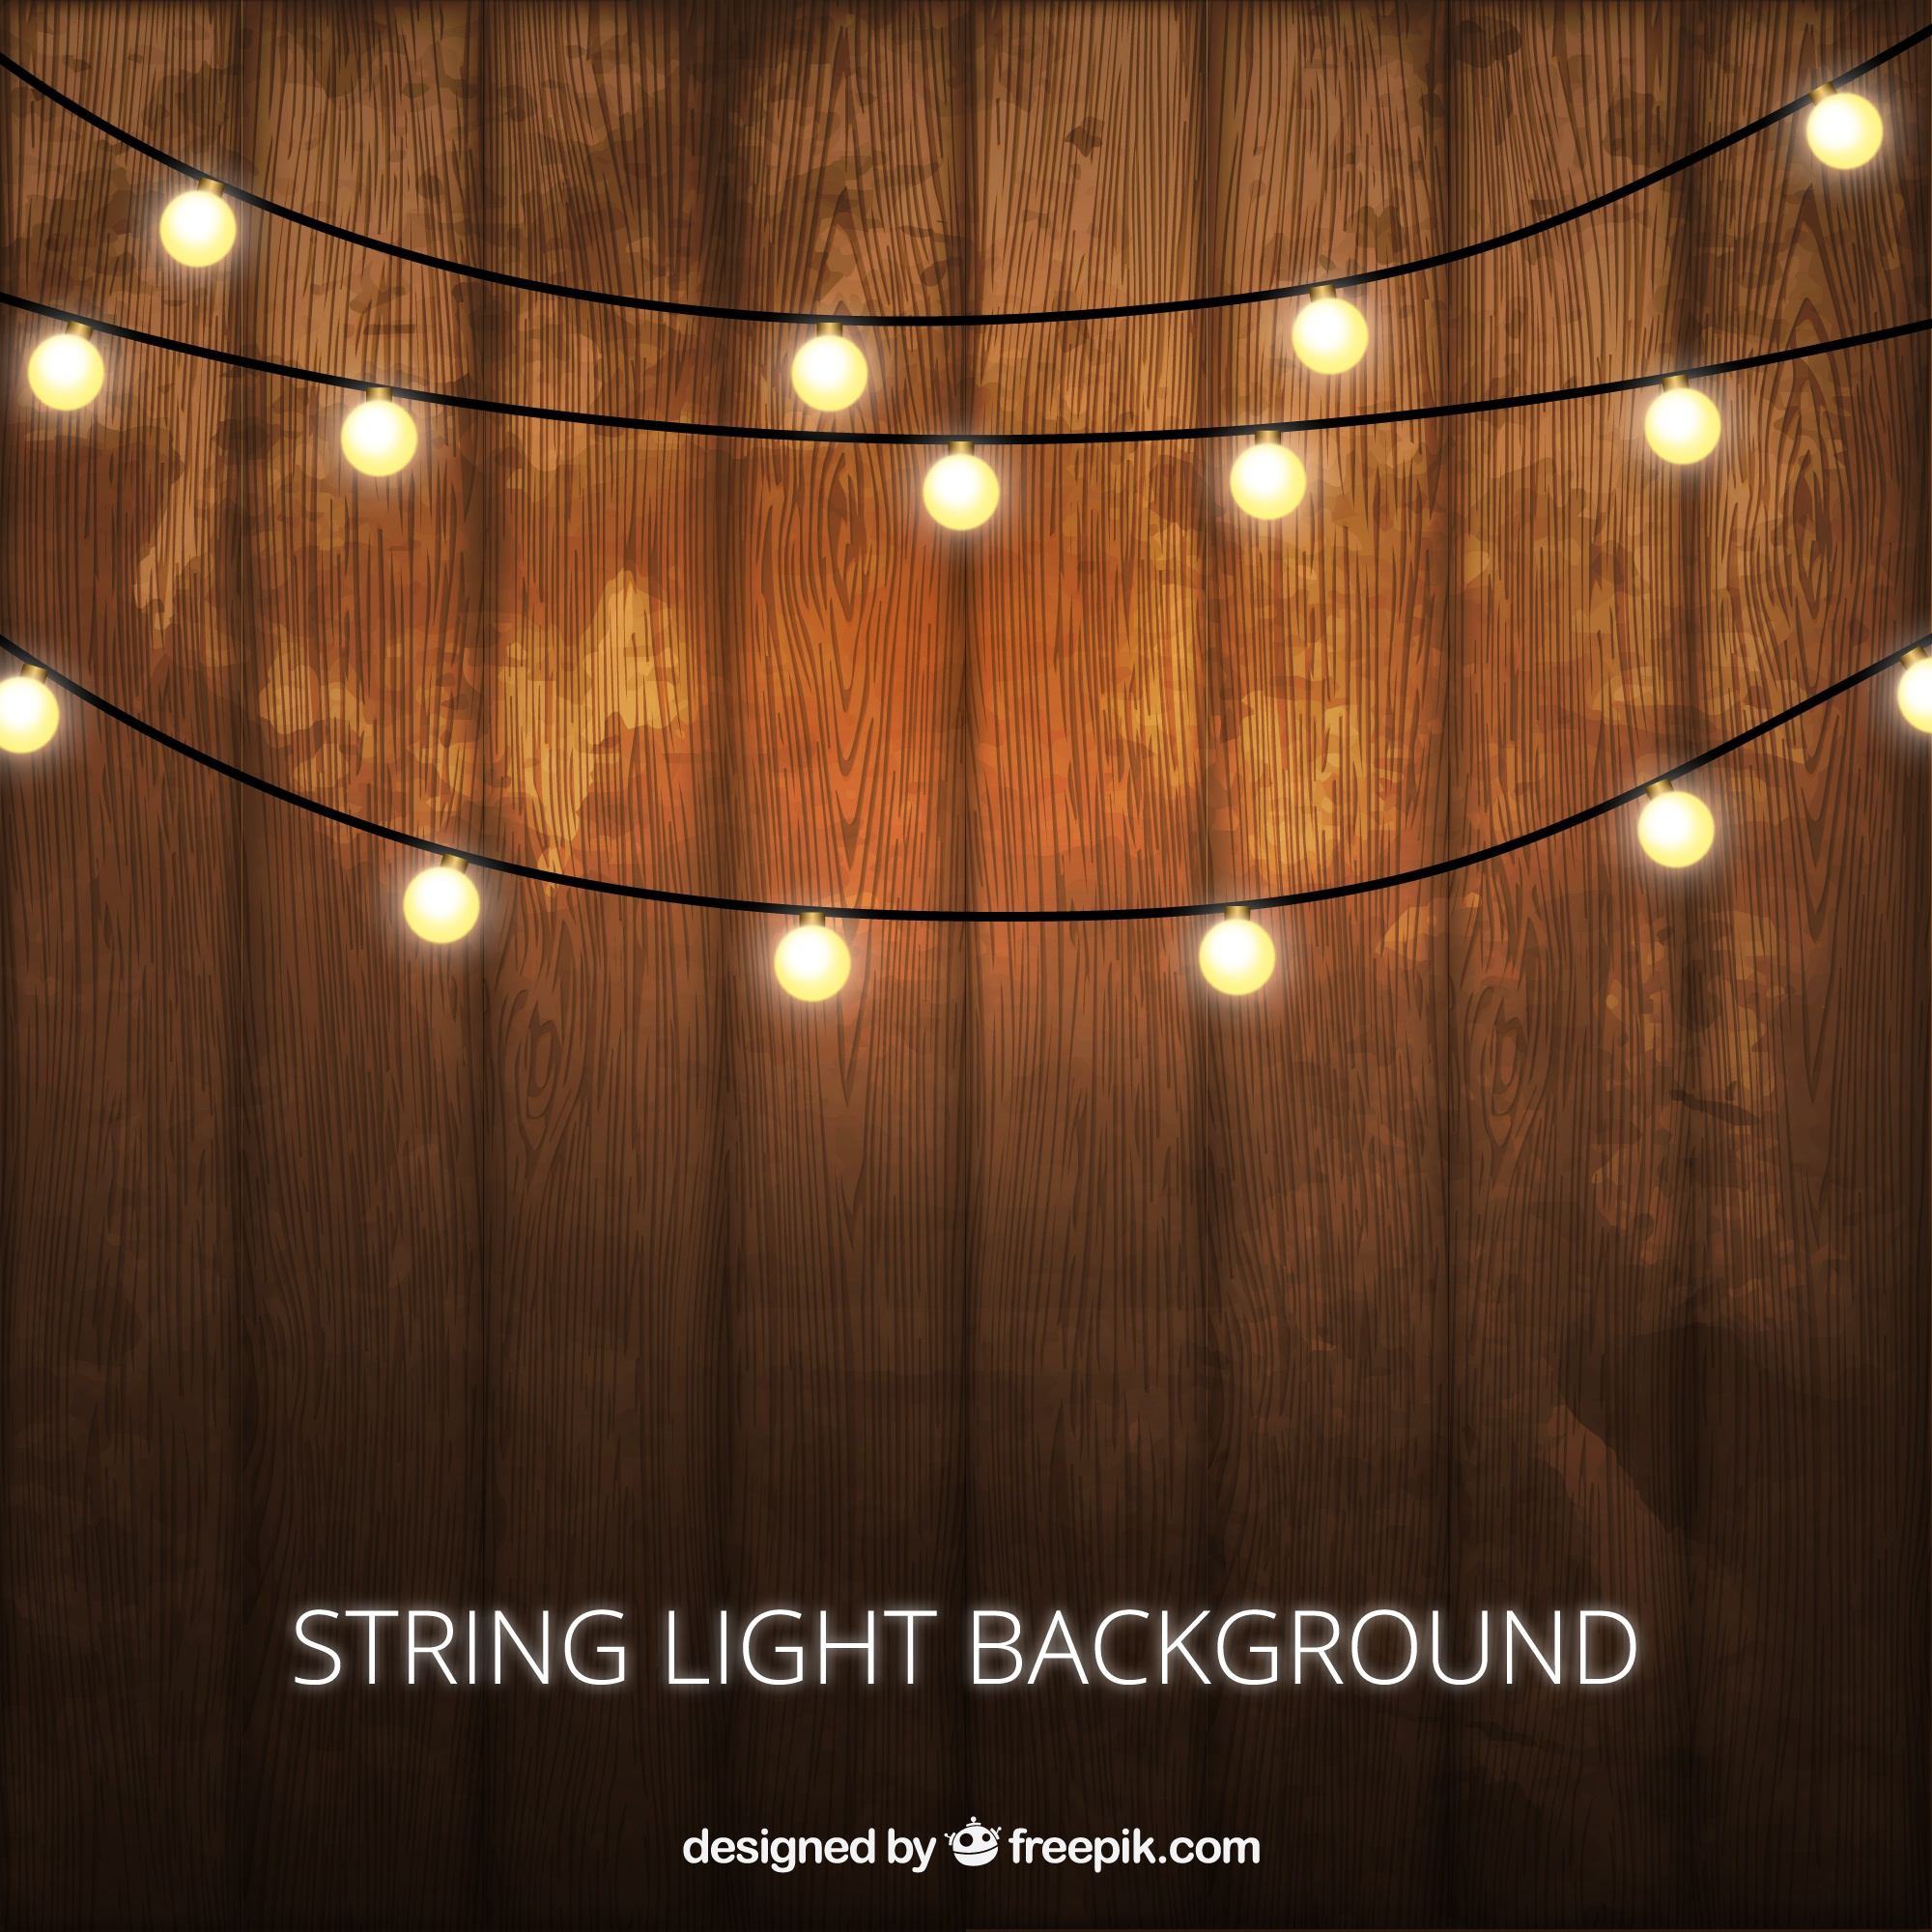 Wooden background with decorative lightbulbs